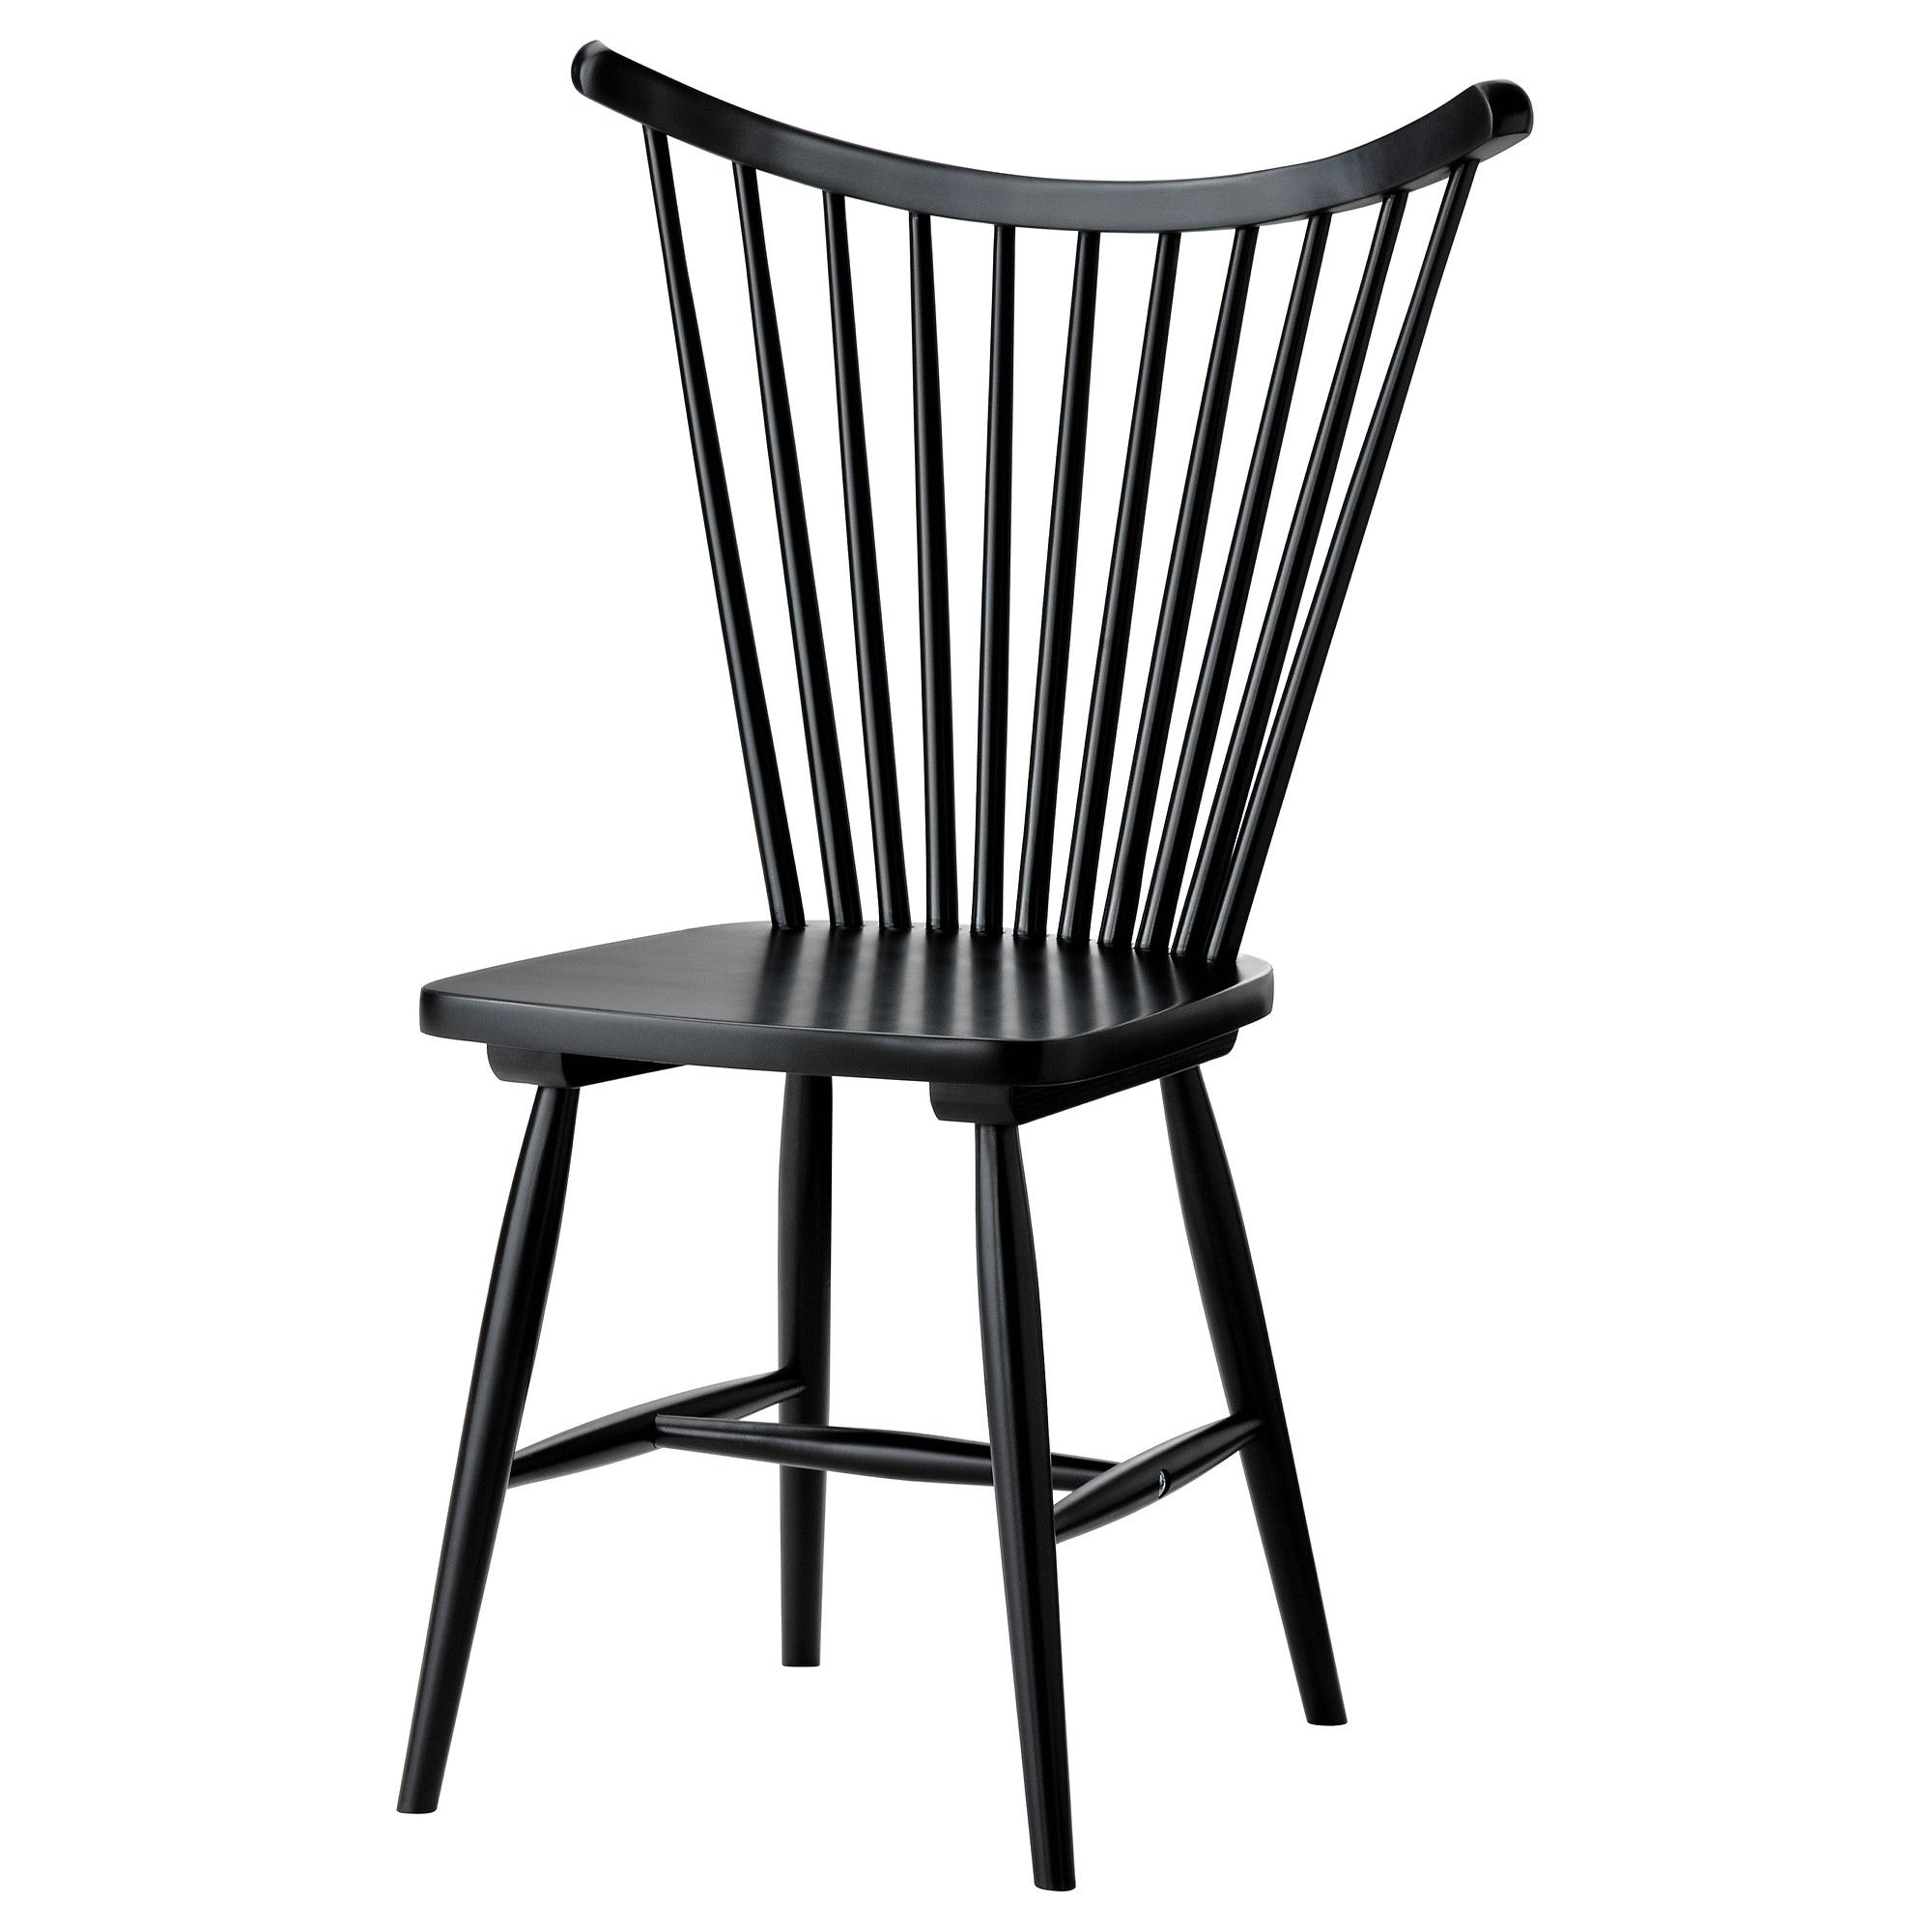 Trendig Chair Black Ikea Wish It Came In Natural Wood To Match My Table  With Chaise Reidar Ikea